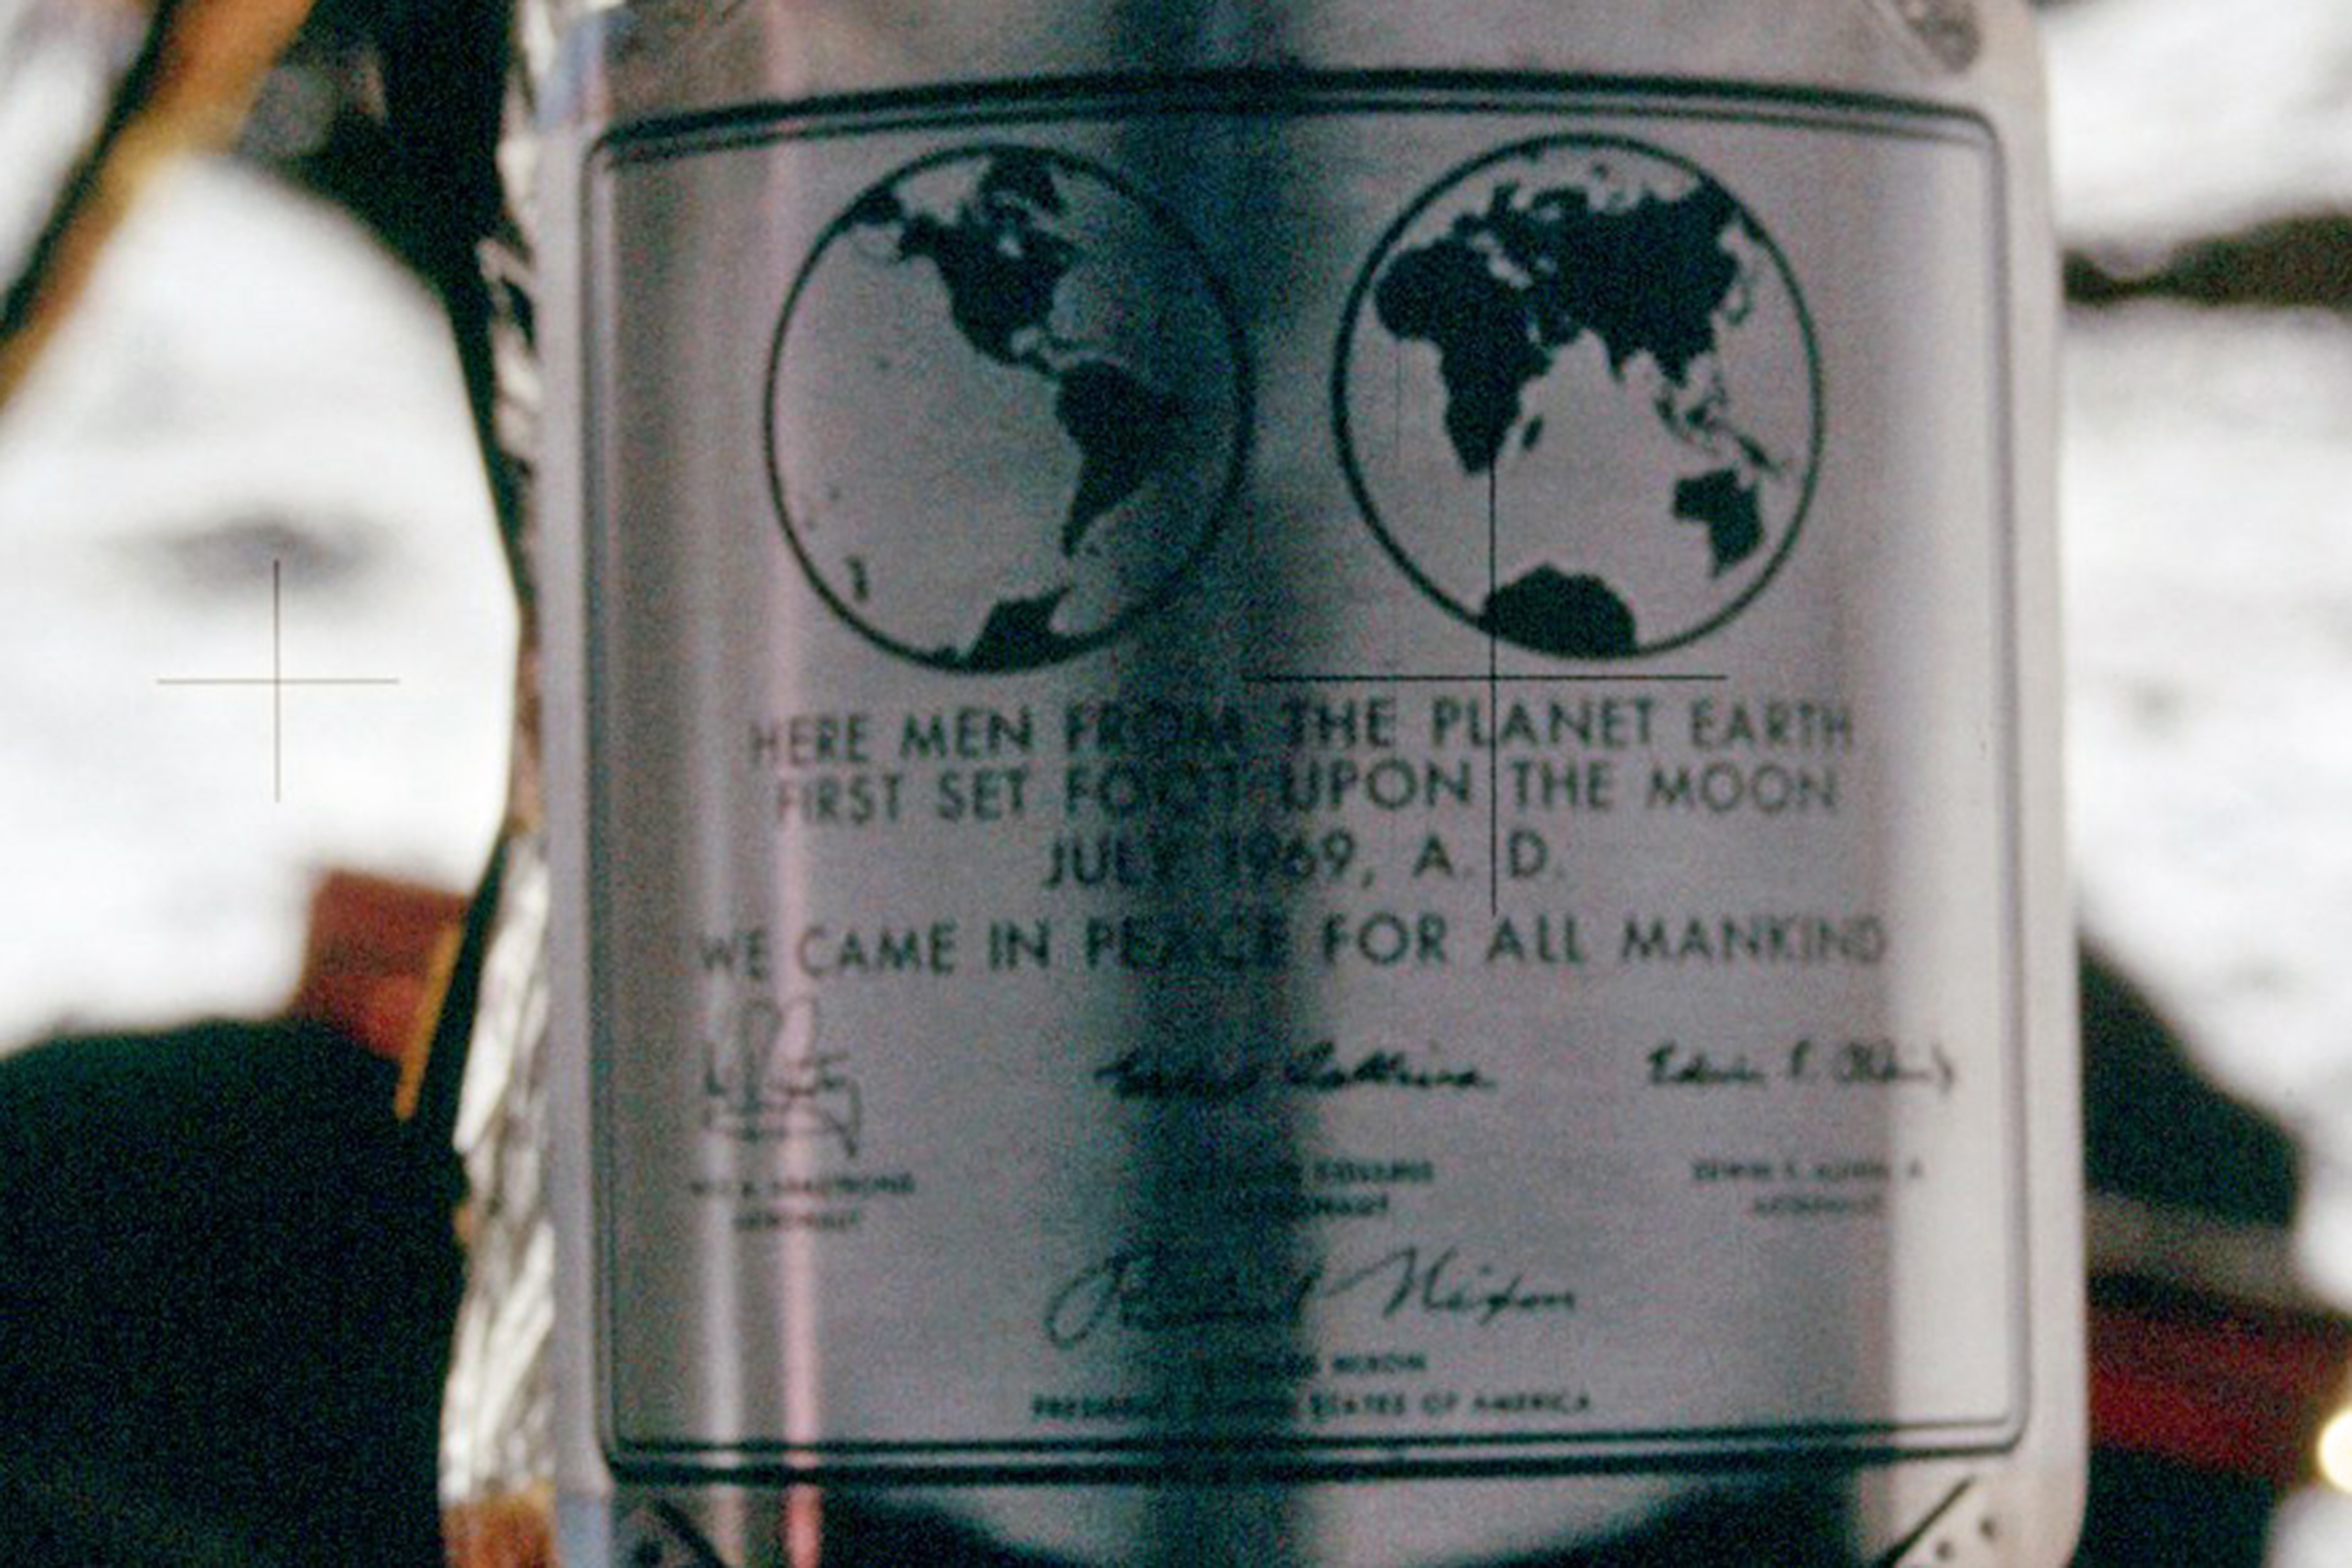 """Here men from the planet Earth first set foot upon the Moon - July 1969,  A.D . We came in peace for all mankind."""